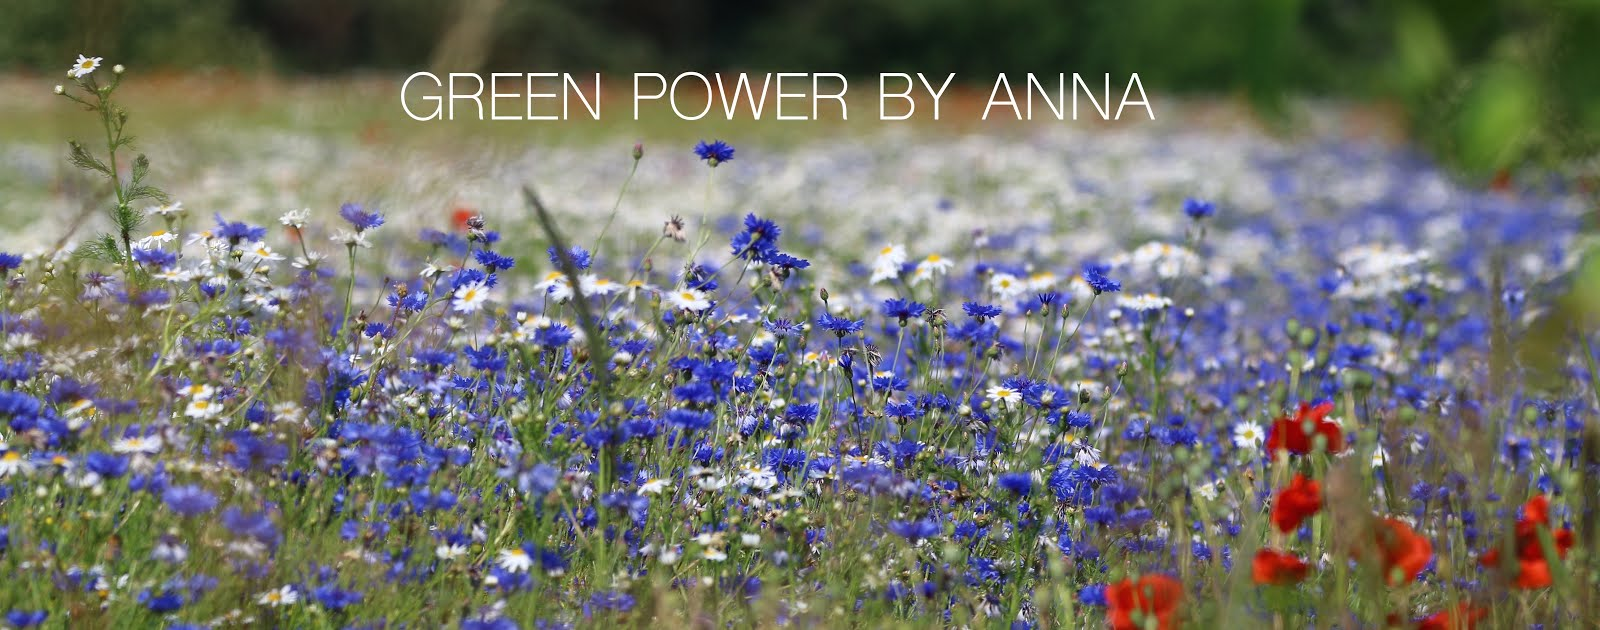 Green power by Anna